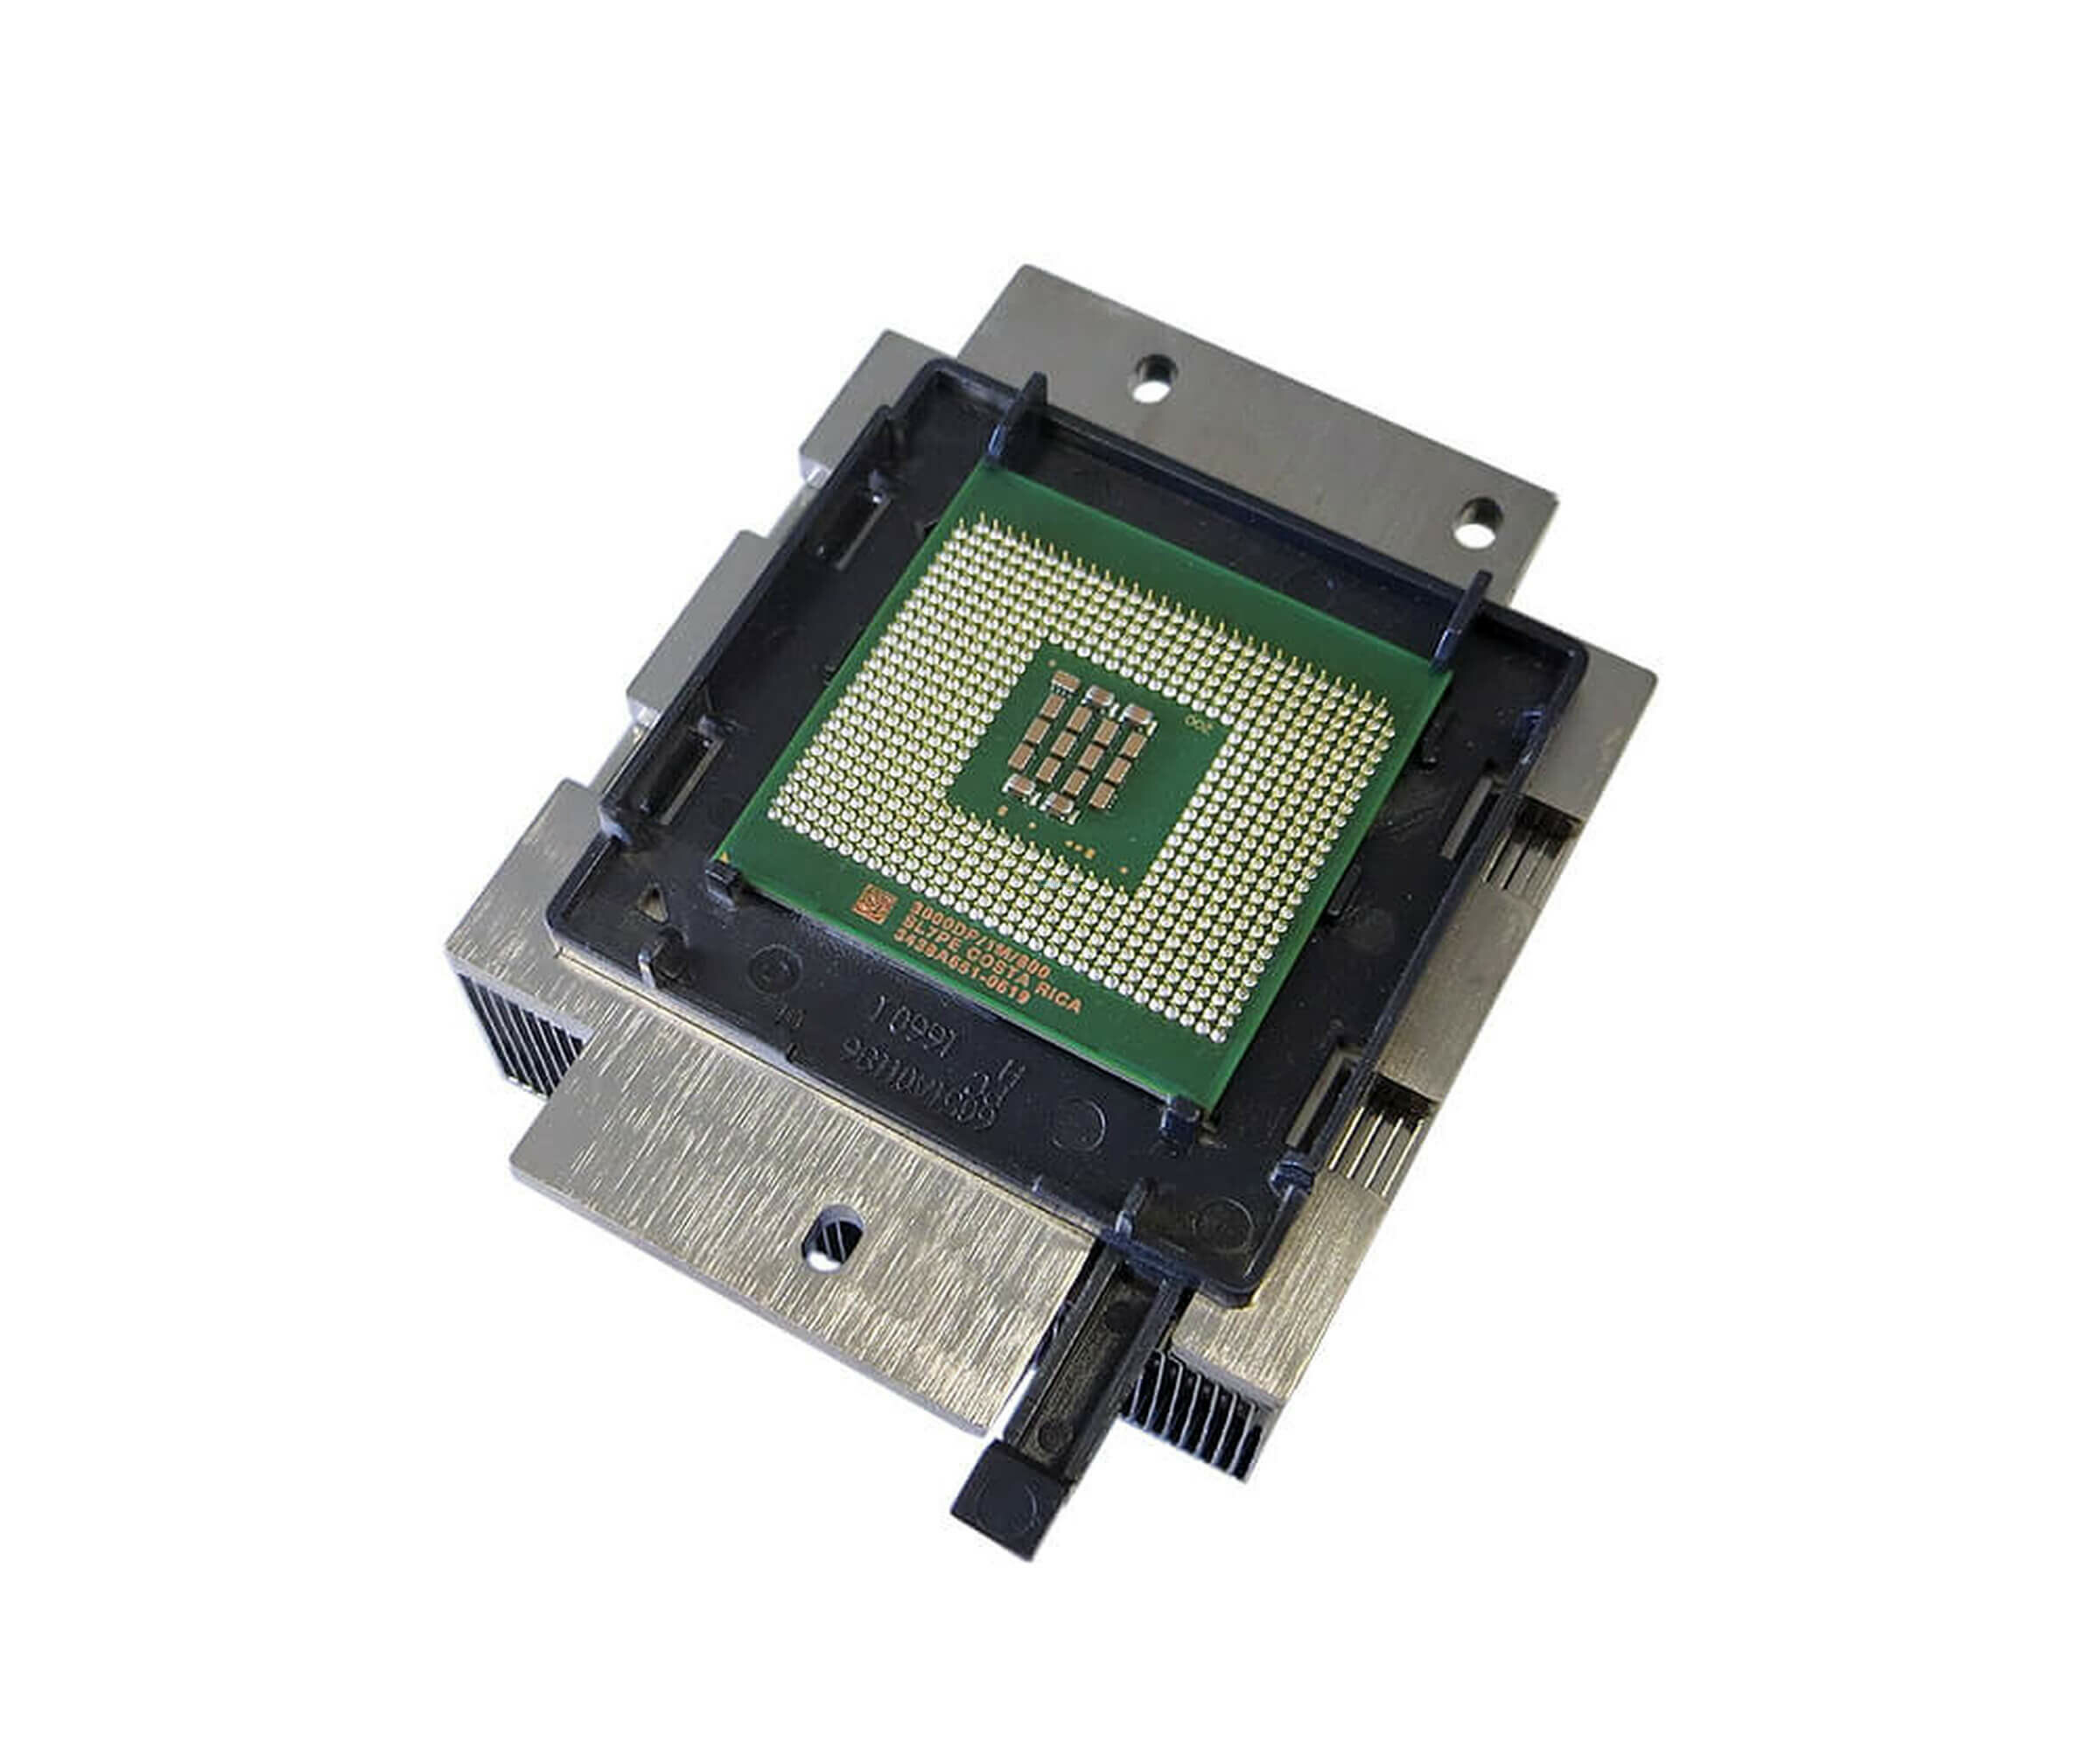 HP 368152-B21 - Intel Xeon Prozessor - 3.00 GHz Prozessor - Socket PPGA604 - 1 MB - 1-Core - KIT